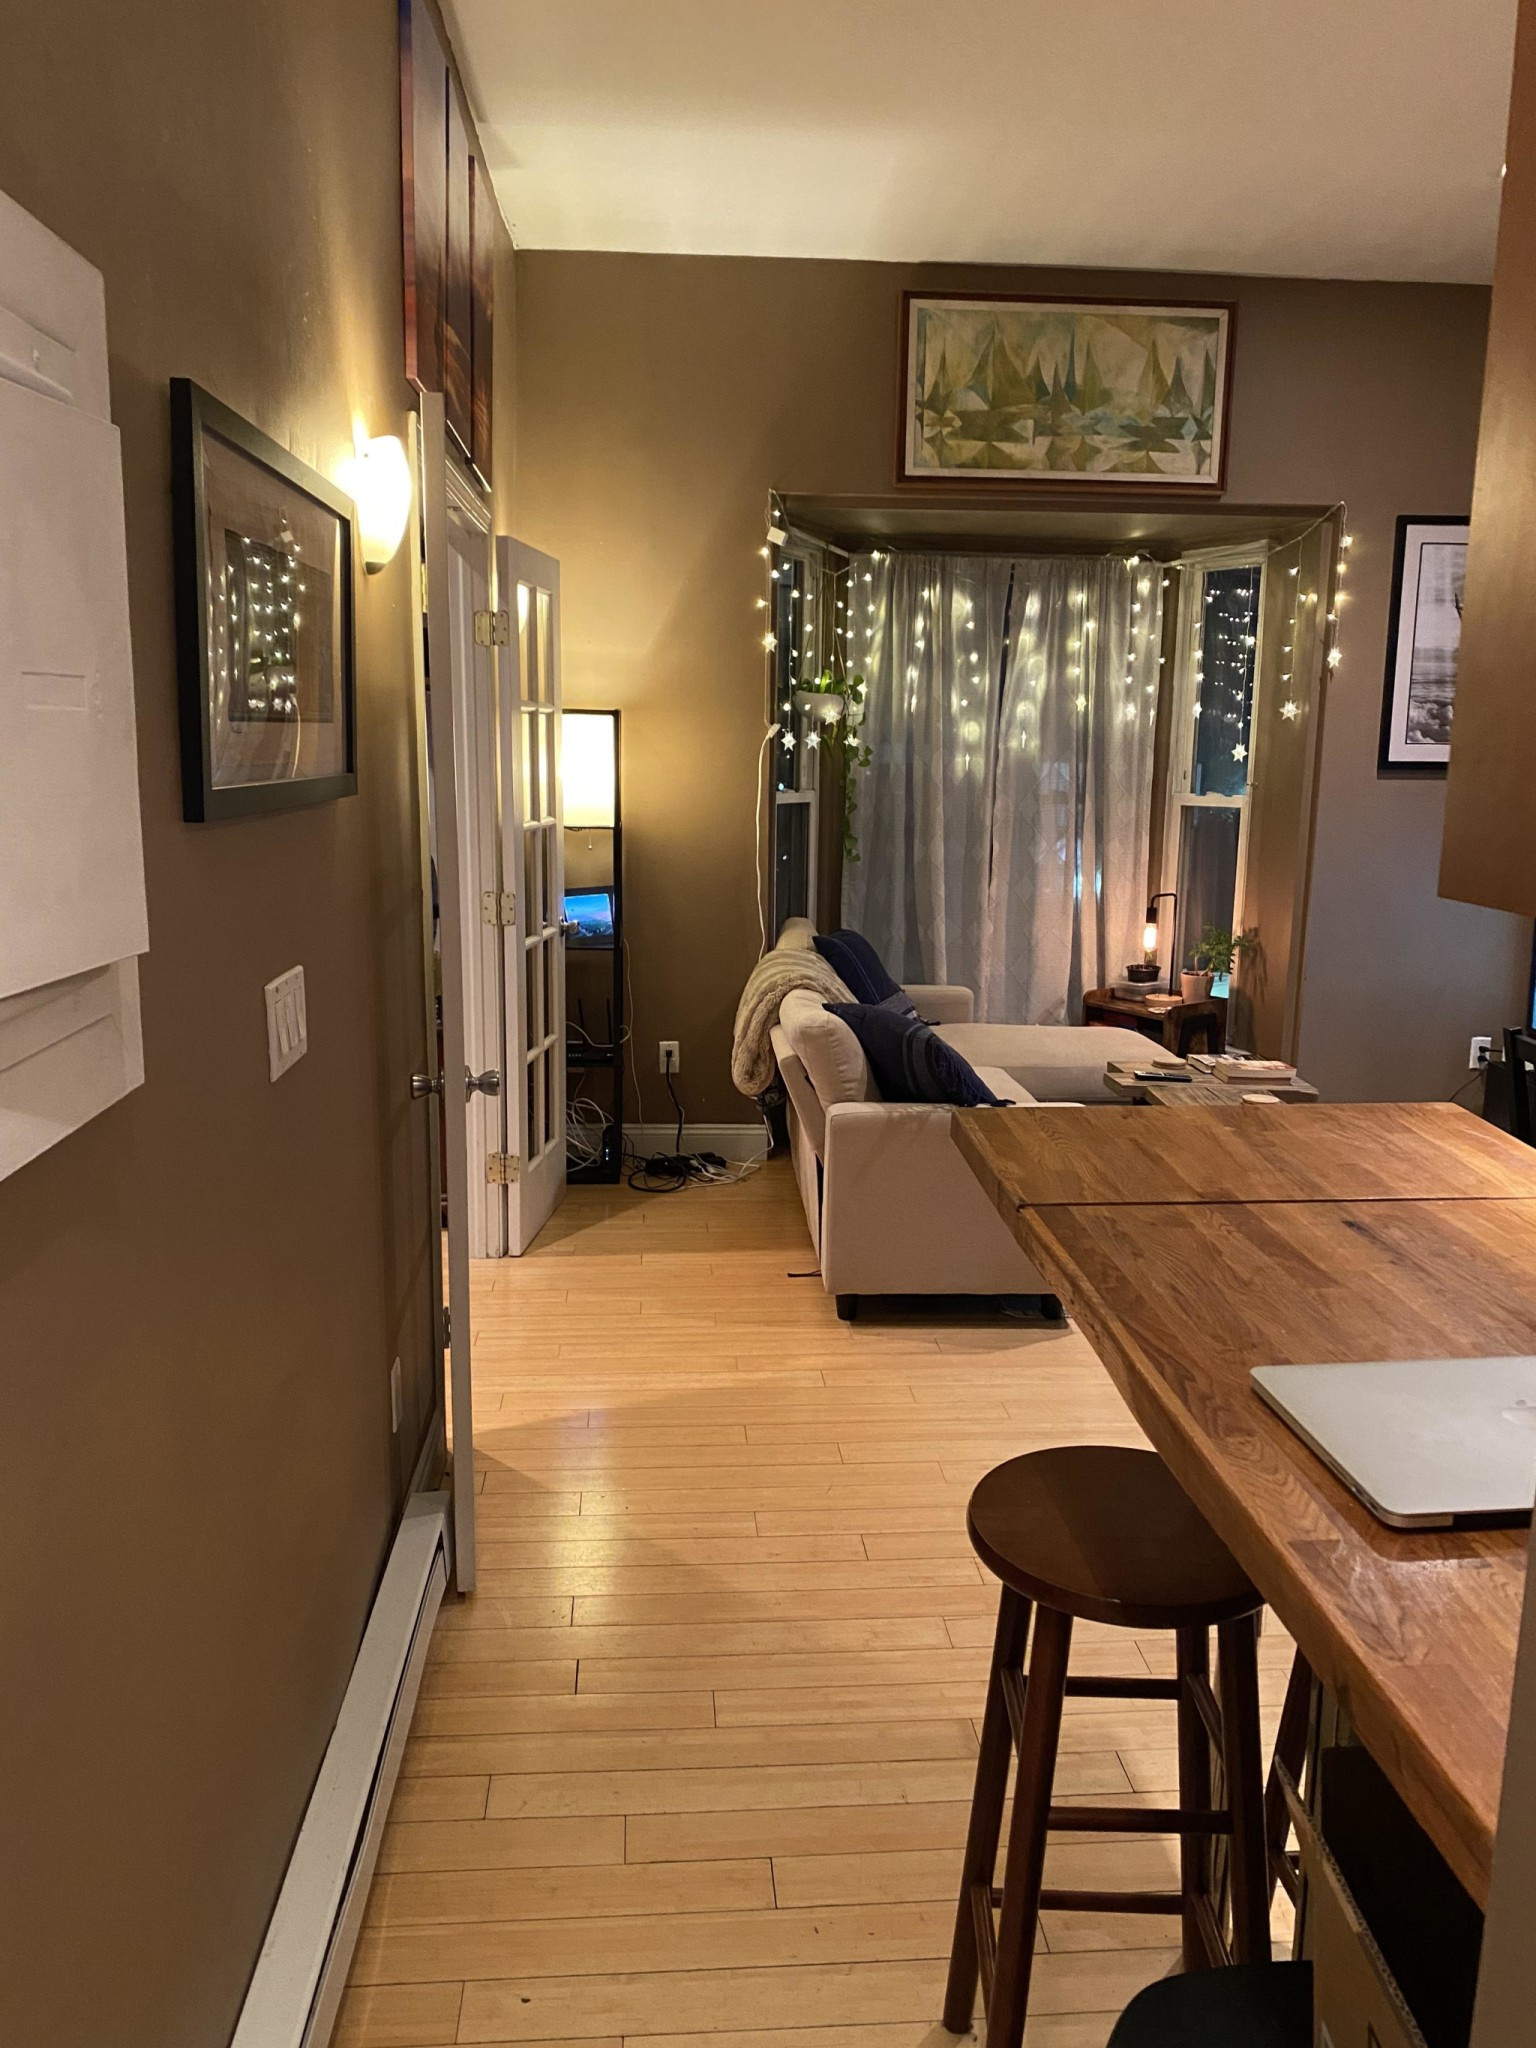 1.5 Beds, 1 Bath apartment in Boston, South End for $2,300